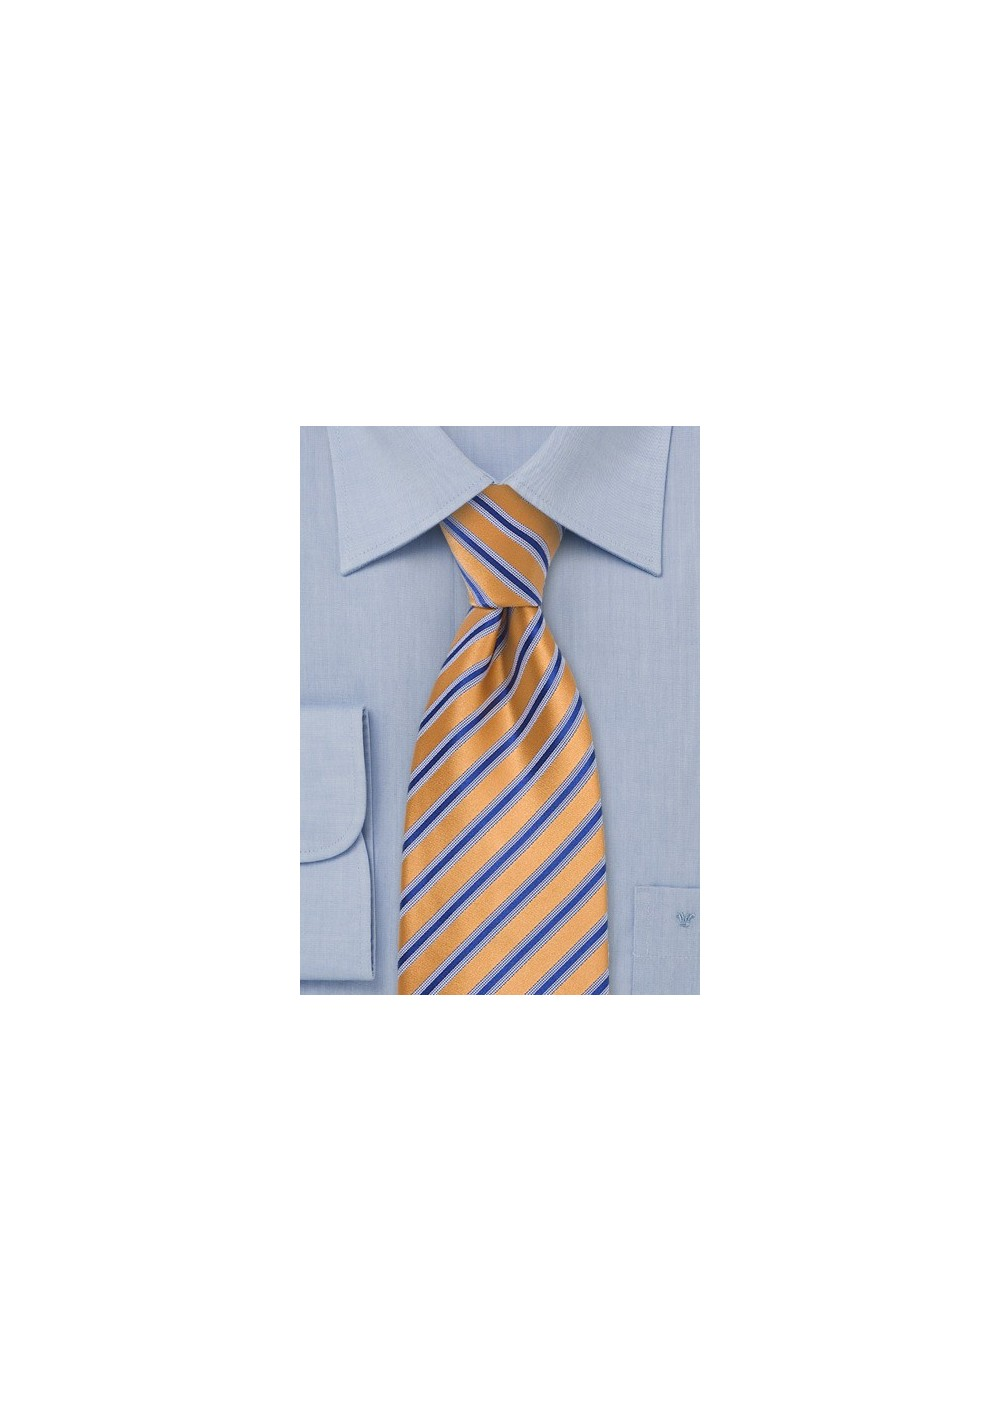 Tangerine and Navy Striped Tie